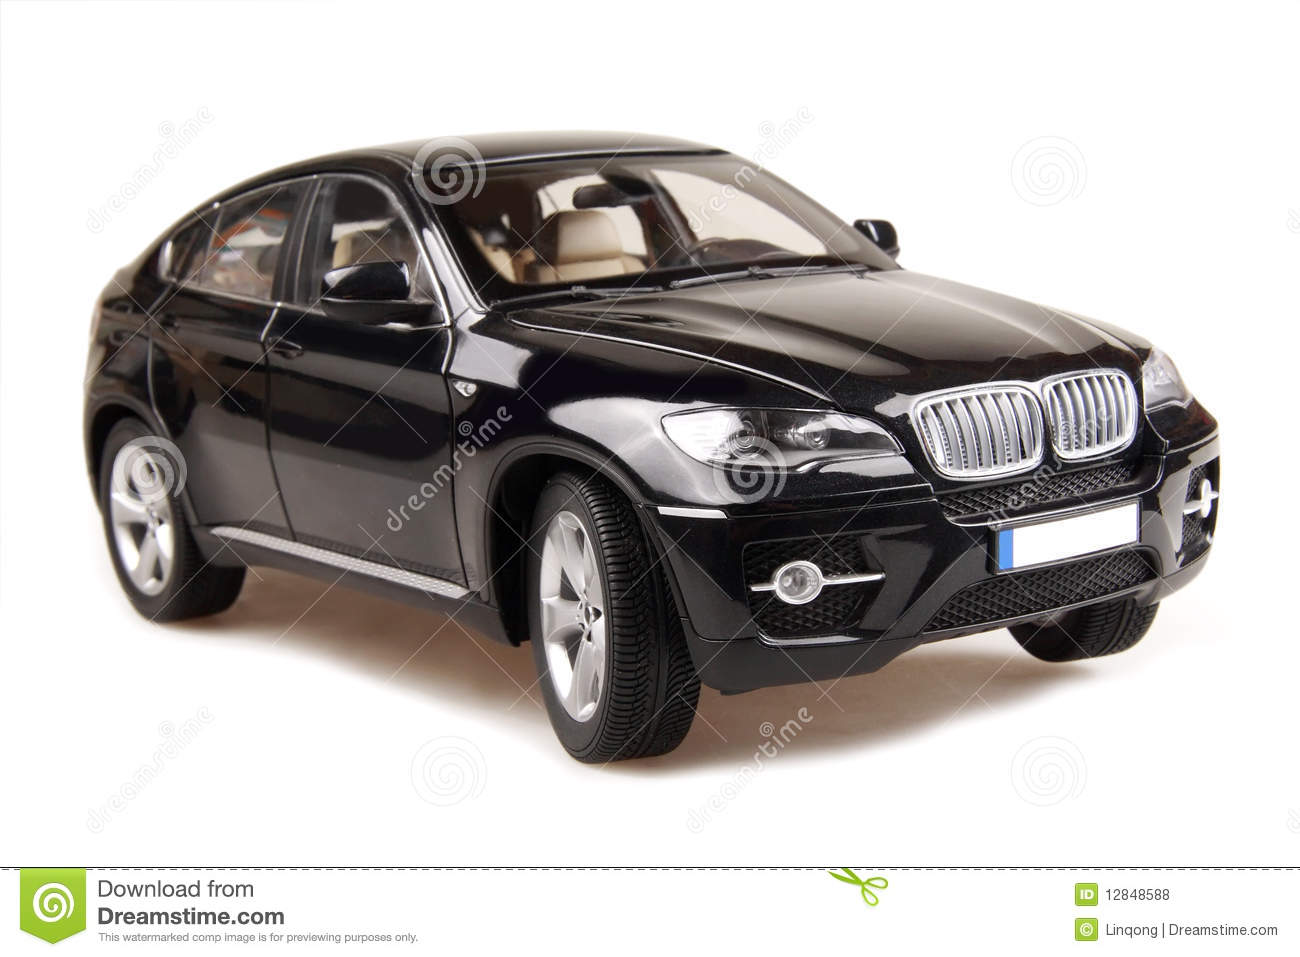 bmw suv car royalty free stock photos image 12848588. Black Bedroom Furniture Sets. Home Design Ideas